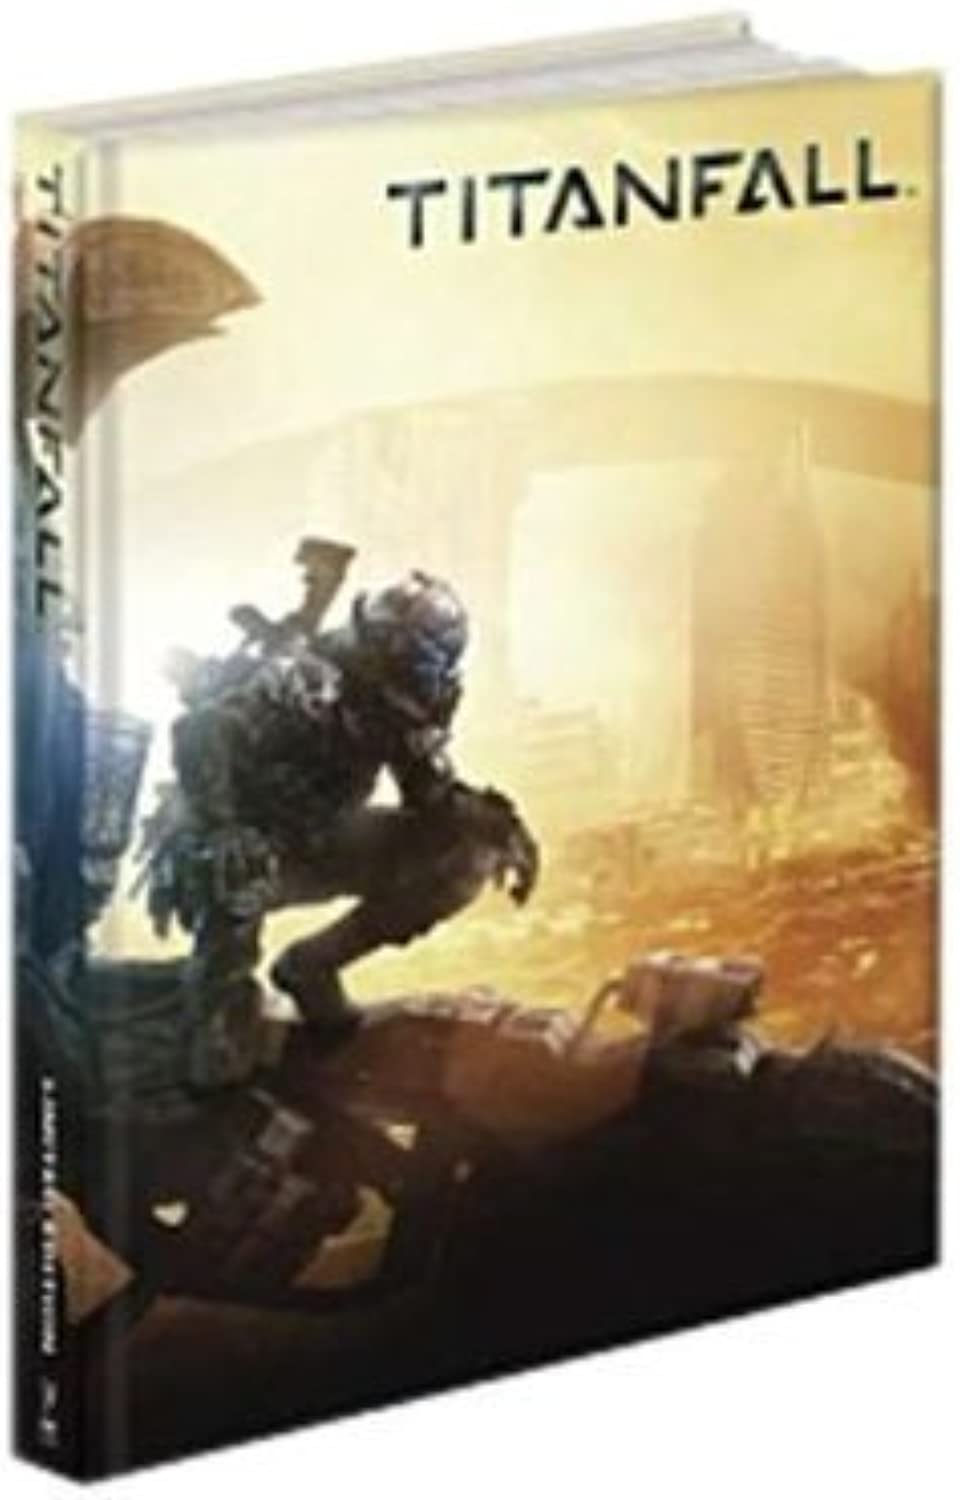 Titanfall Limited Edition Game Guide by Prima